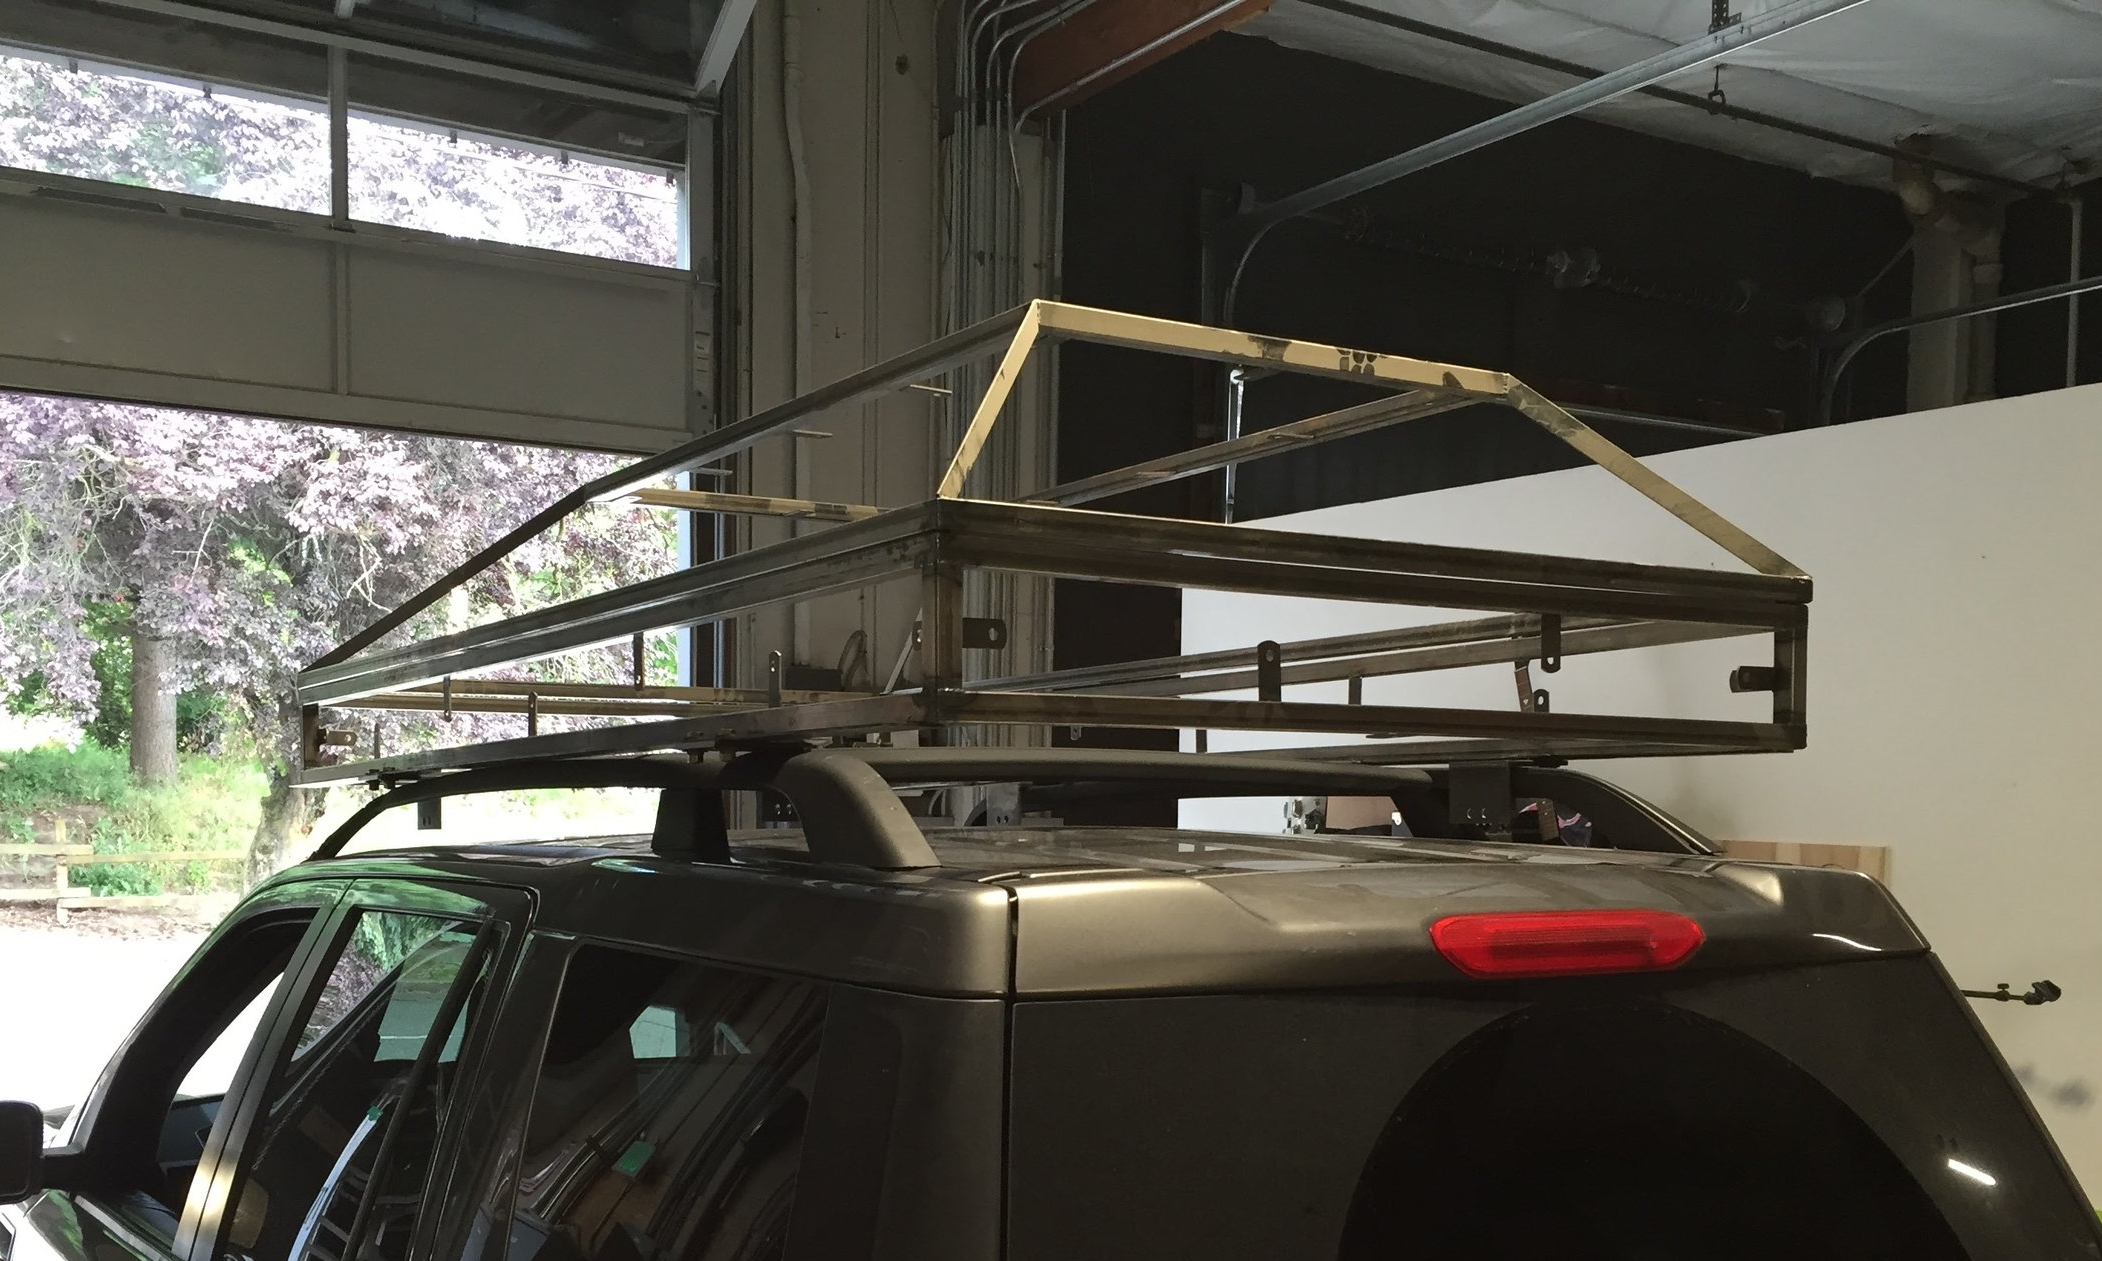 Test fit on roof rack